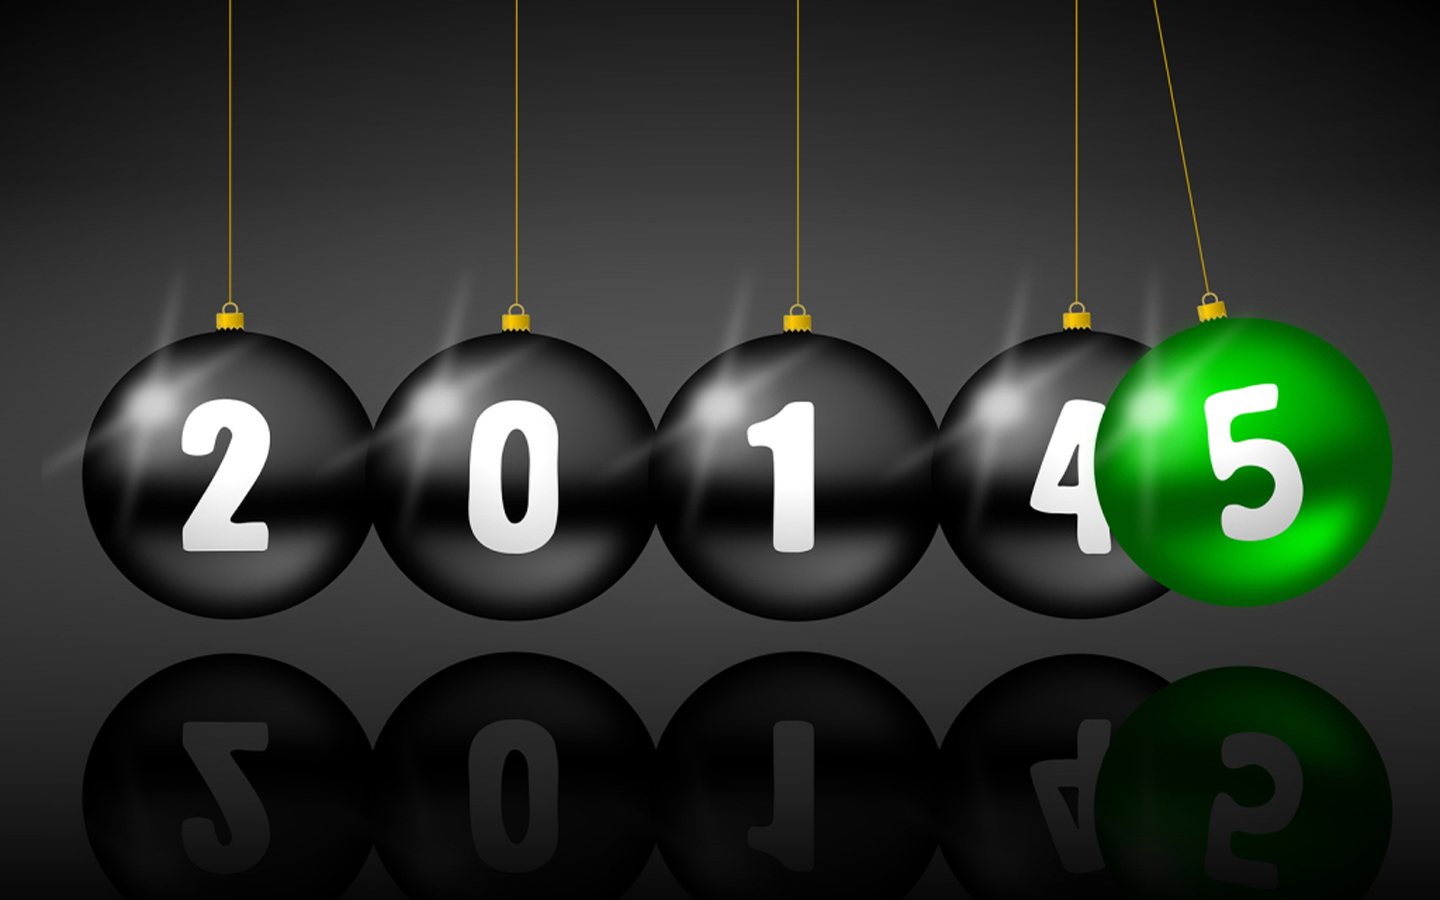 Download Best Happy New Year 2015 Hd Wallpaper Pic Image Wallpapers